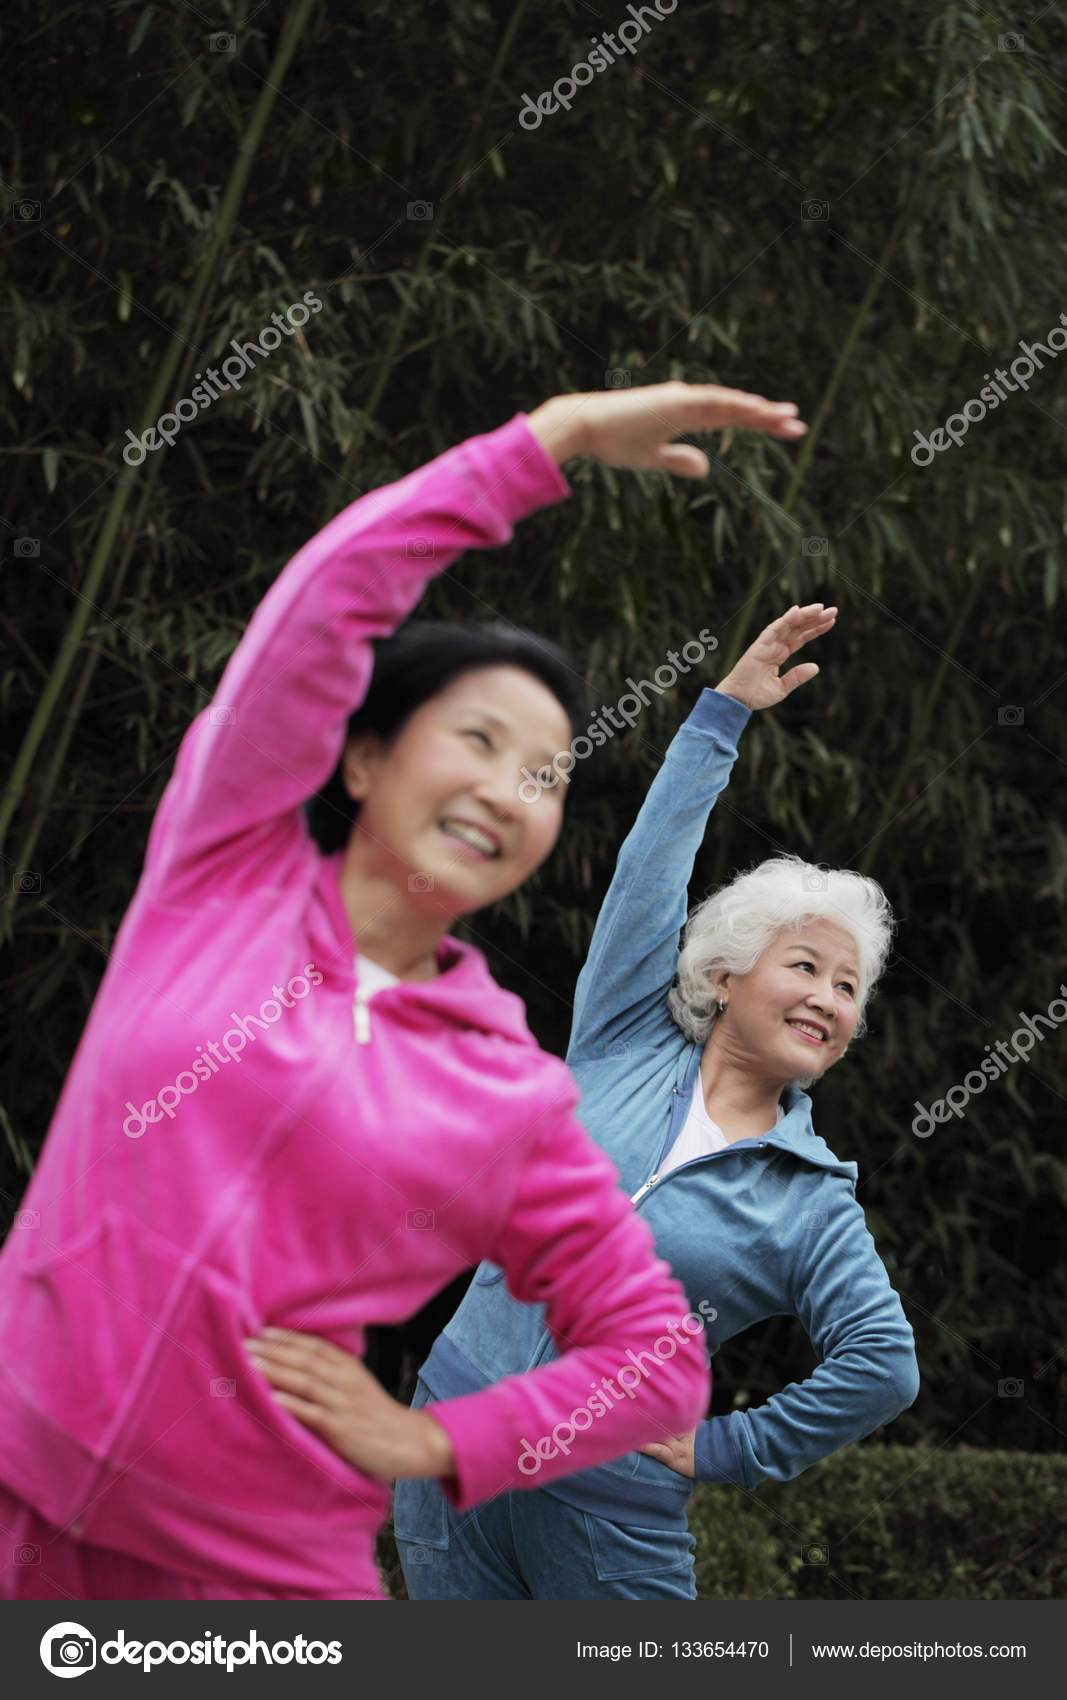 sportive mature women outdoors — stock photo © microstockasia #133654470